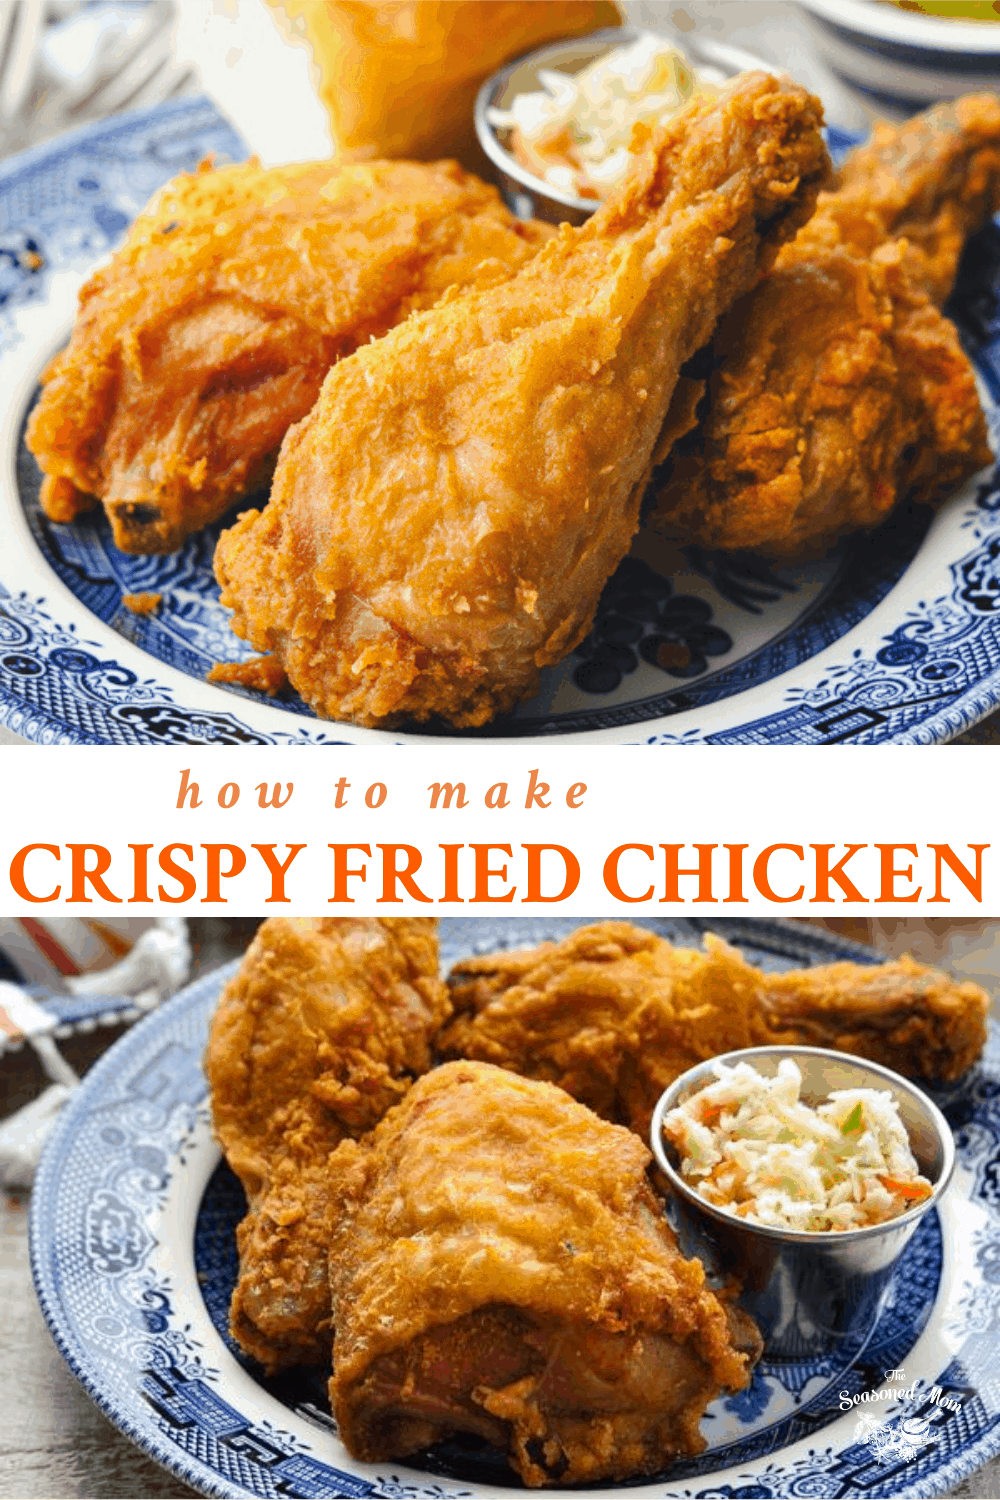 Crispy Fried Chicken Recipe Recipe In 2020 Chicken Main Dish Recipes Fried Chicken Chicken Recipes